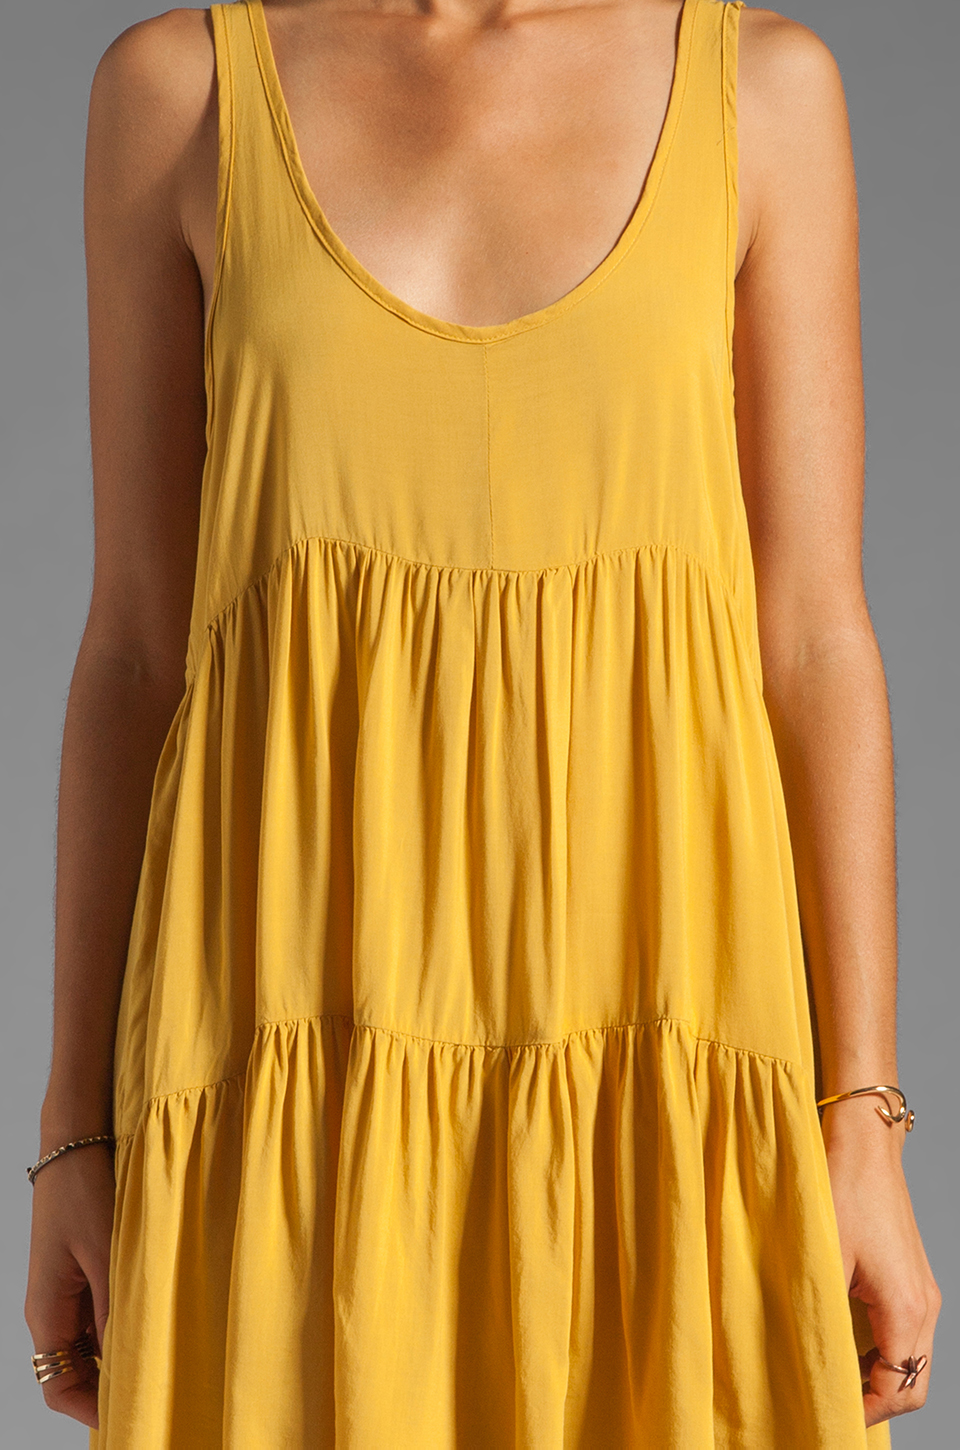 One Teaspoon Two Hearts Tank Dress in Mustard